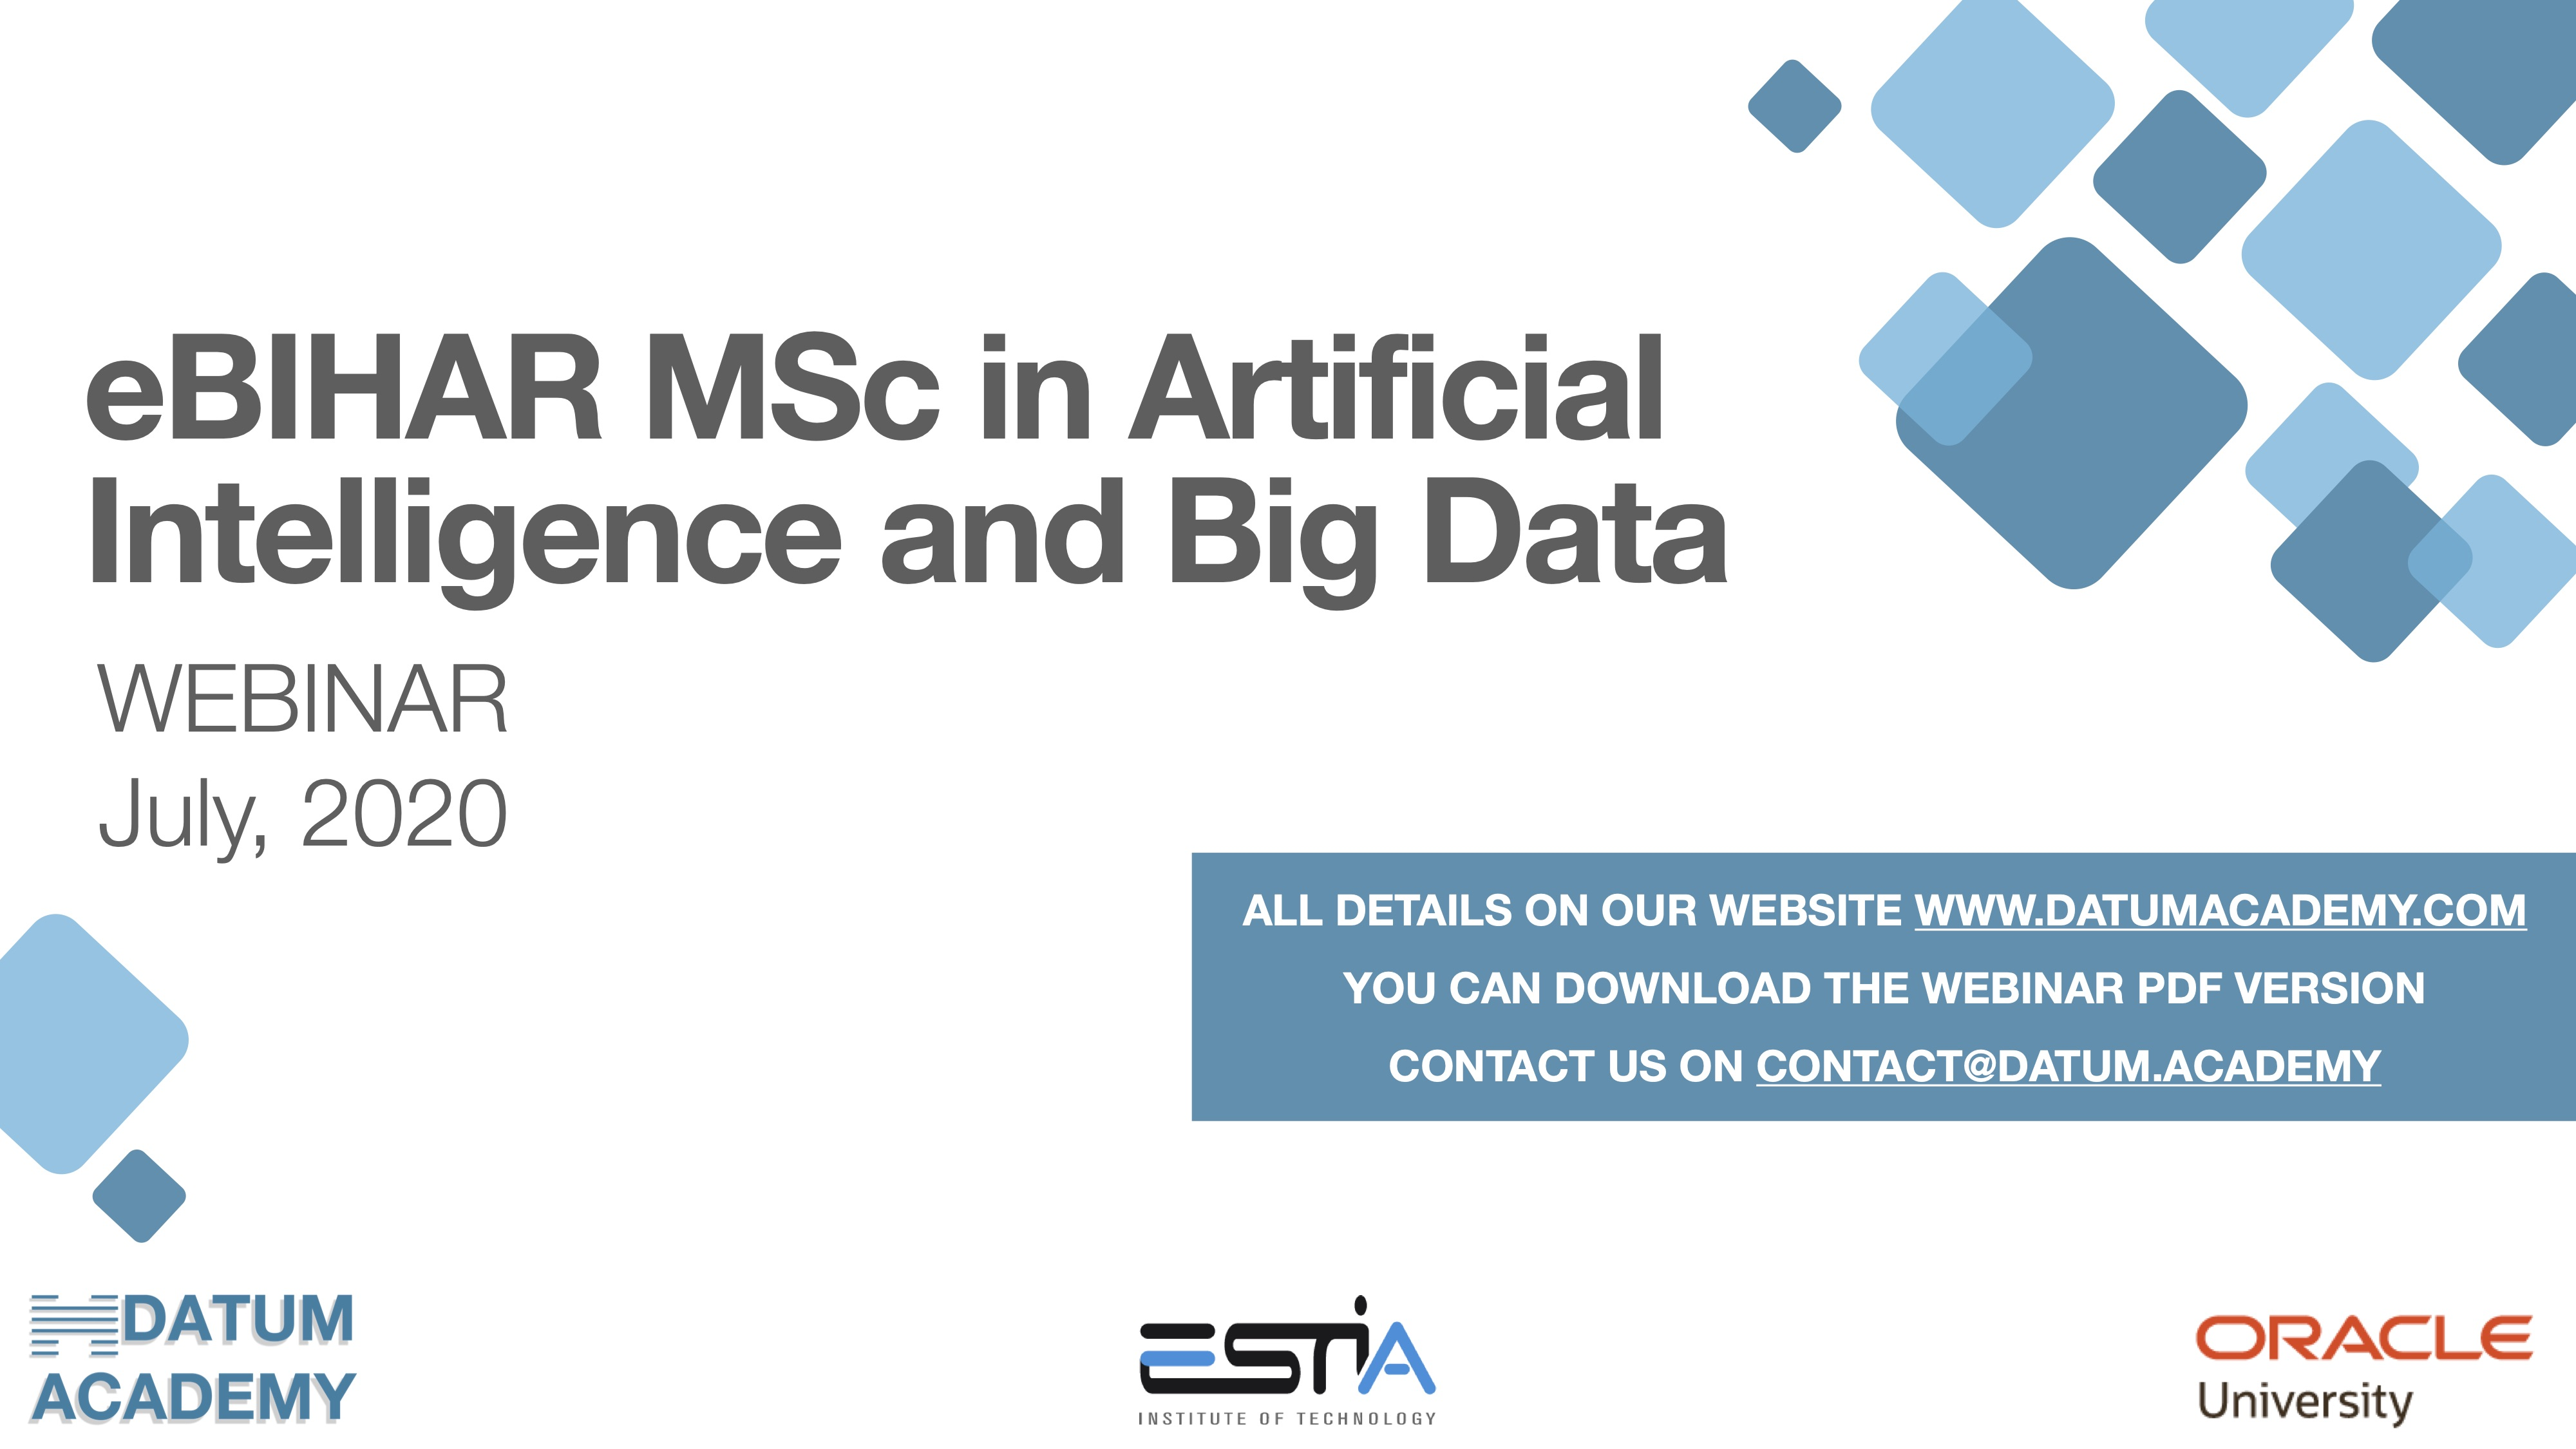 eBIHAR MSc in Artificial Intelligence and Big Data